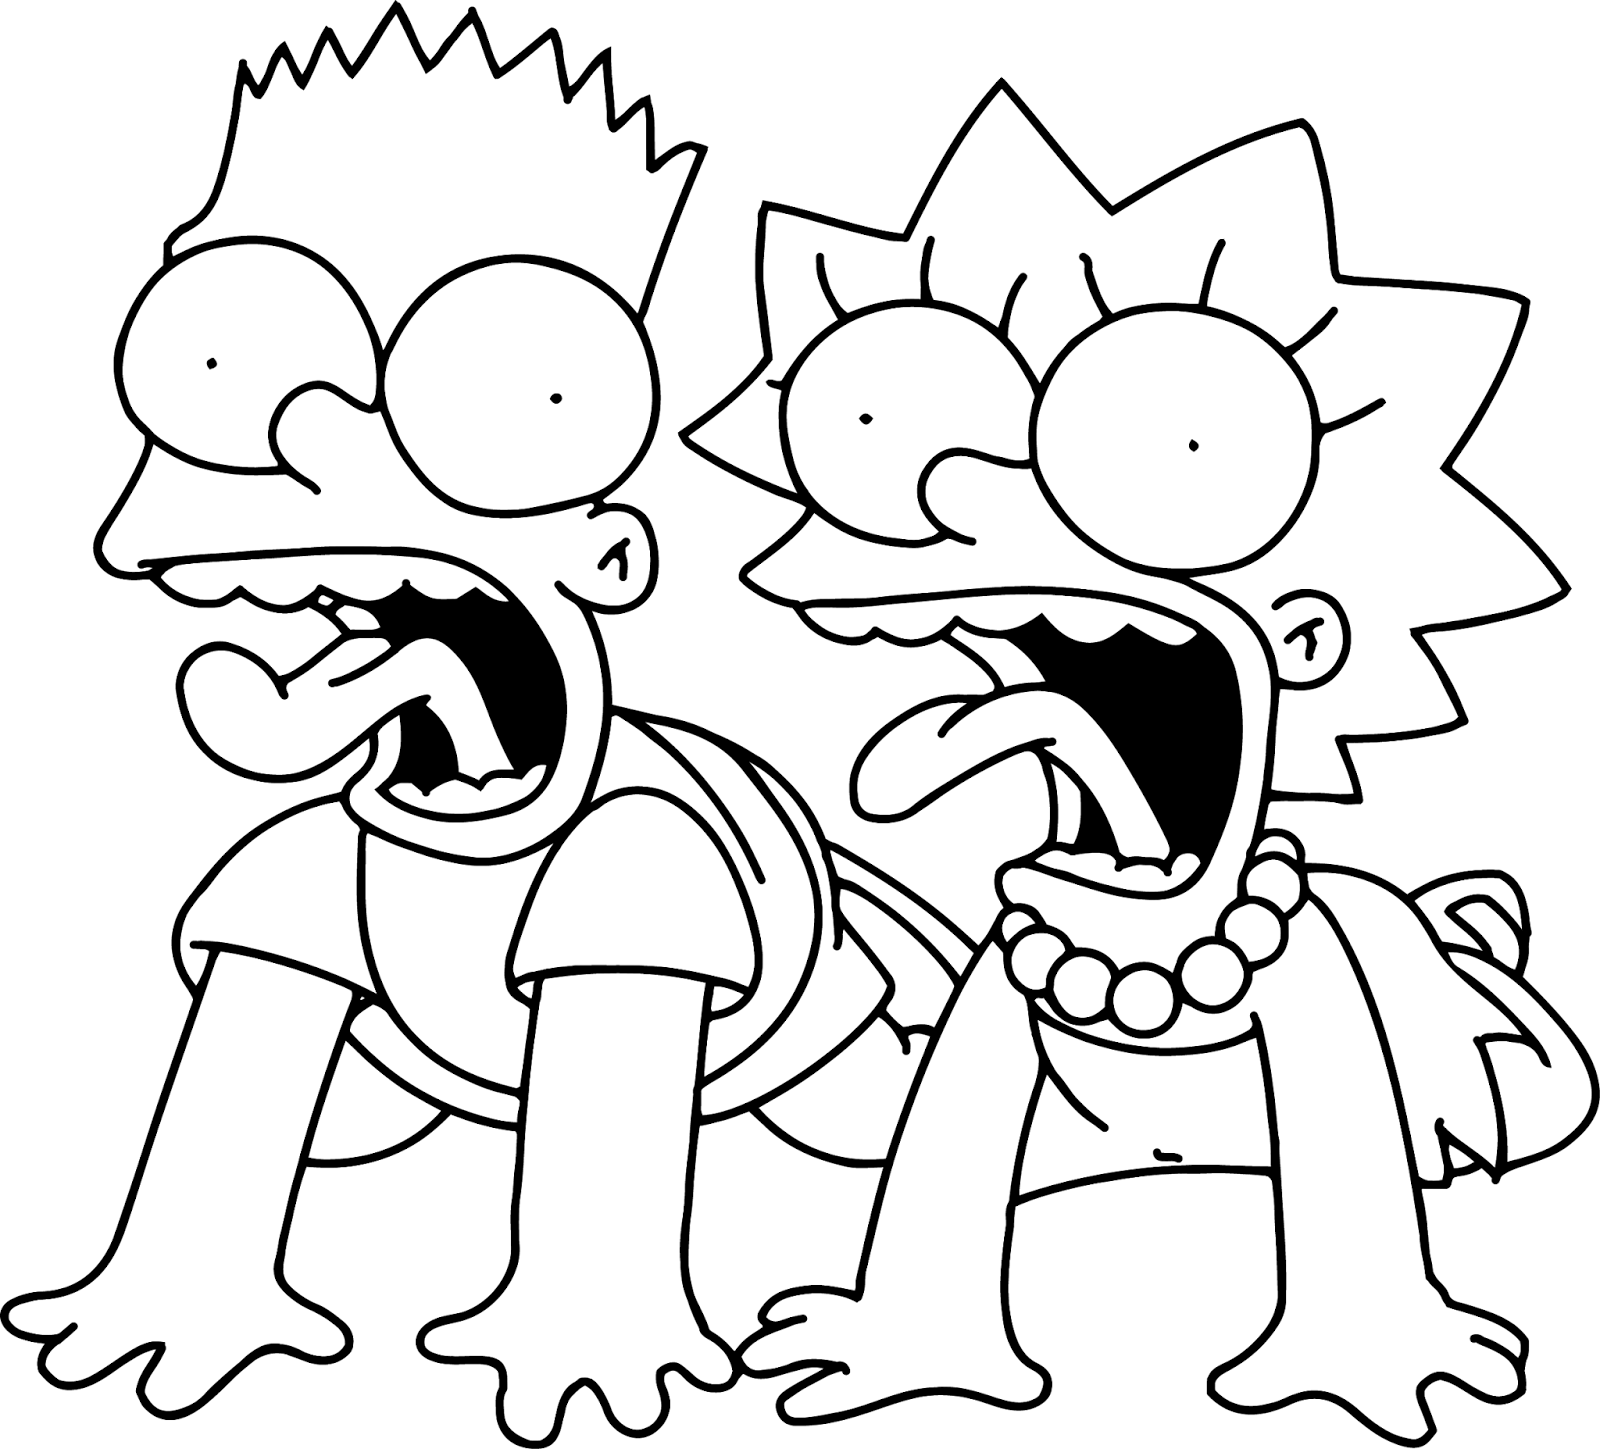 the-simpsons-coloring-page-0004-q1